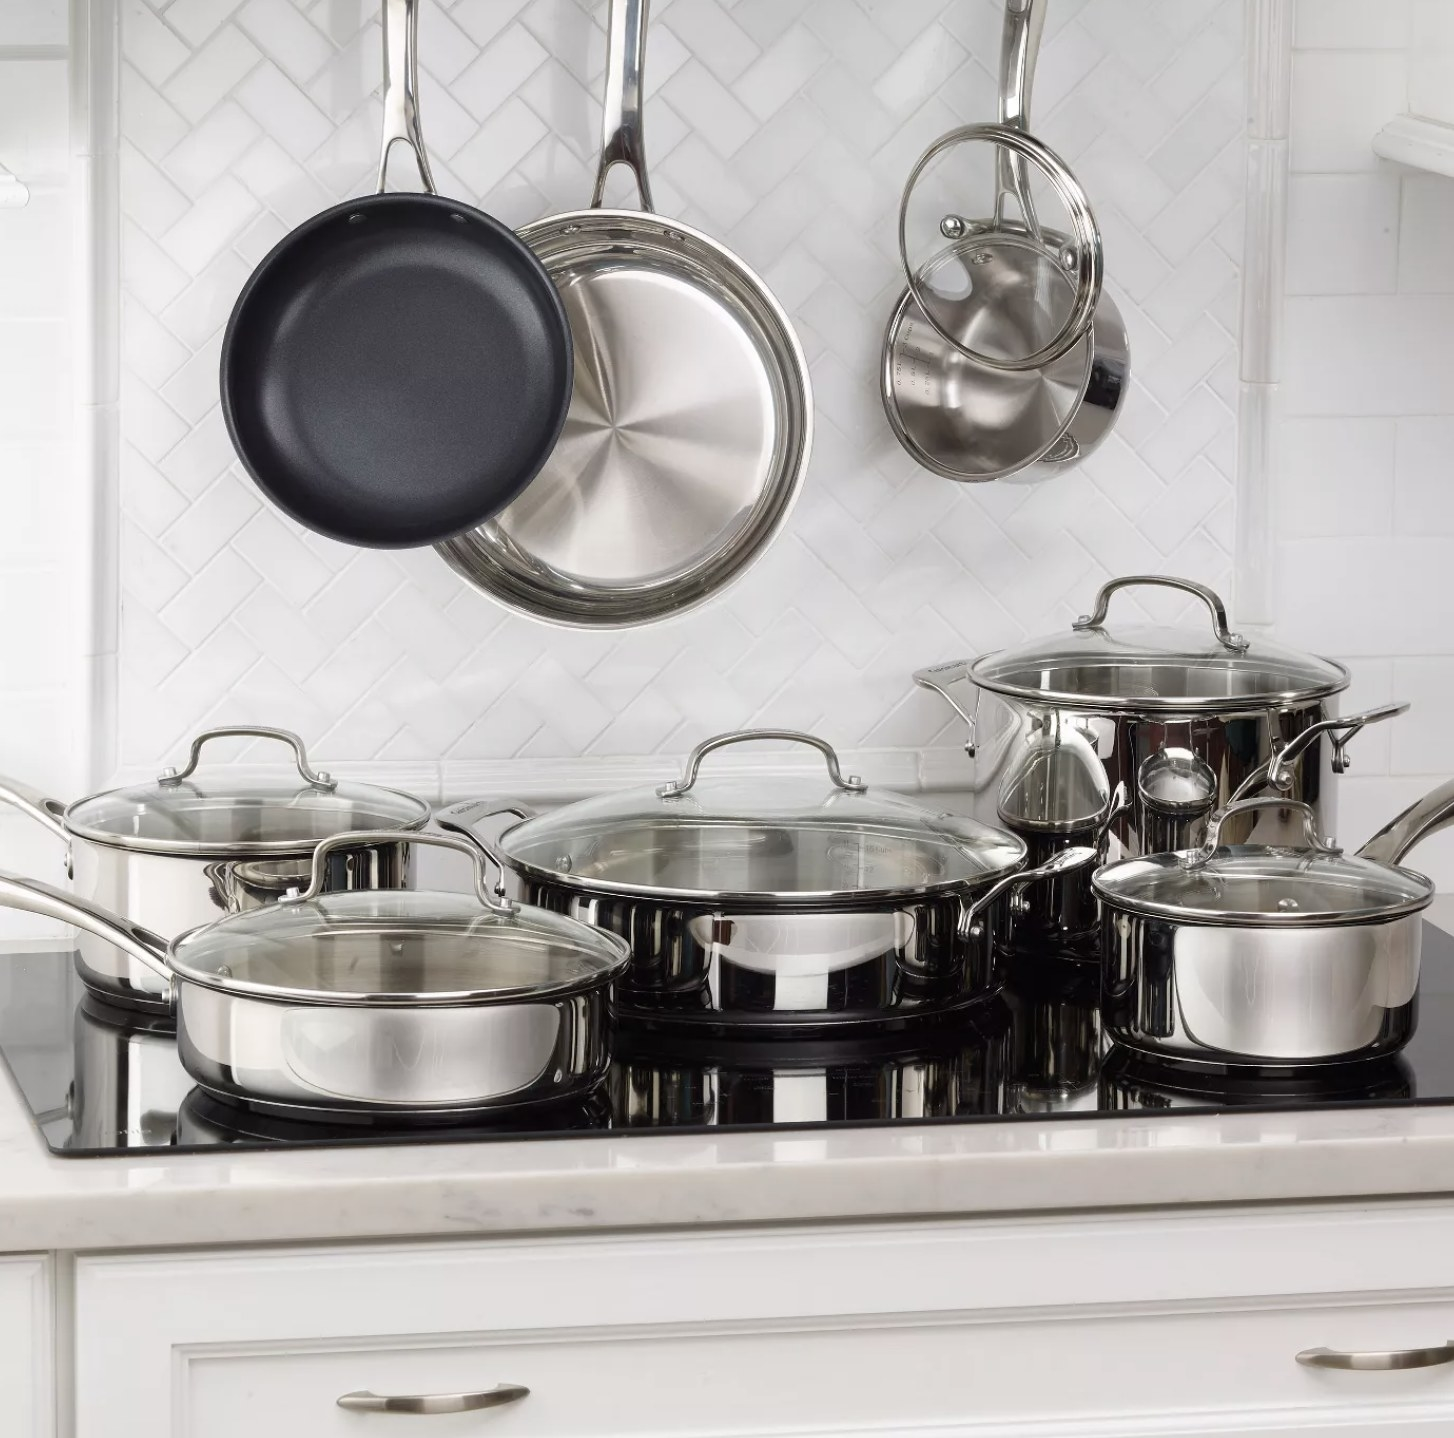 The stainless steel cookware set